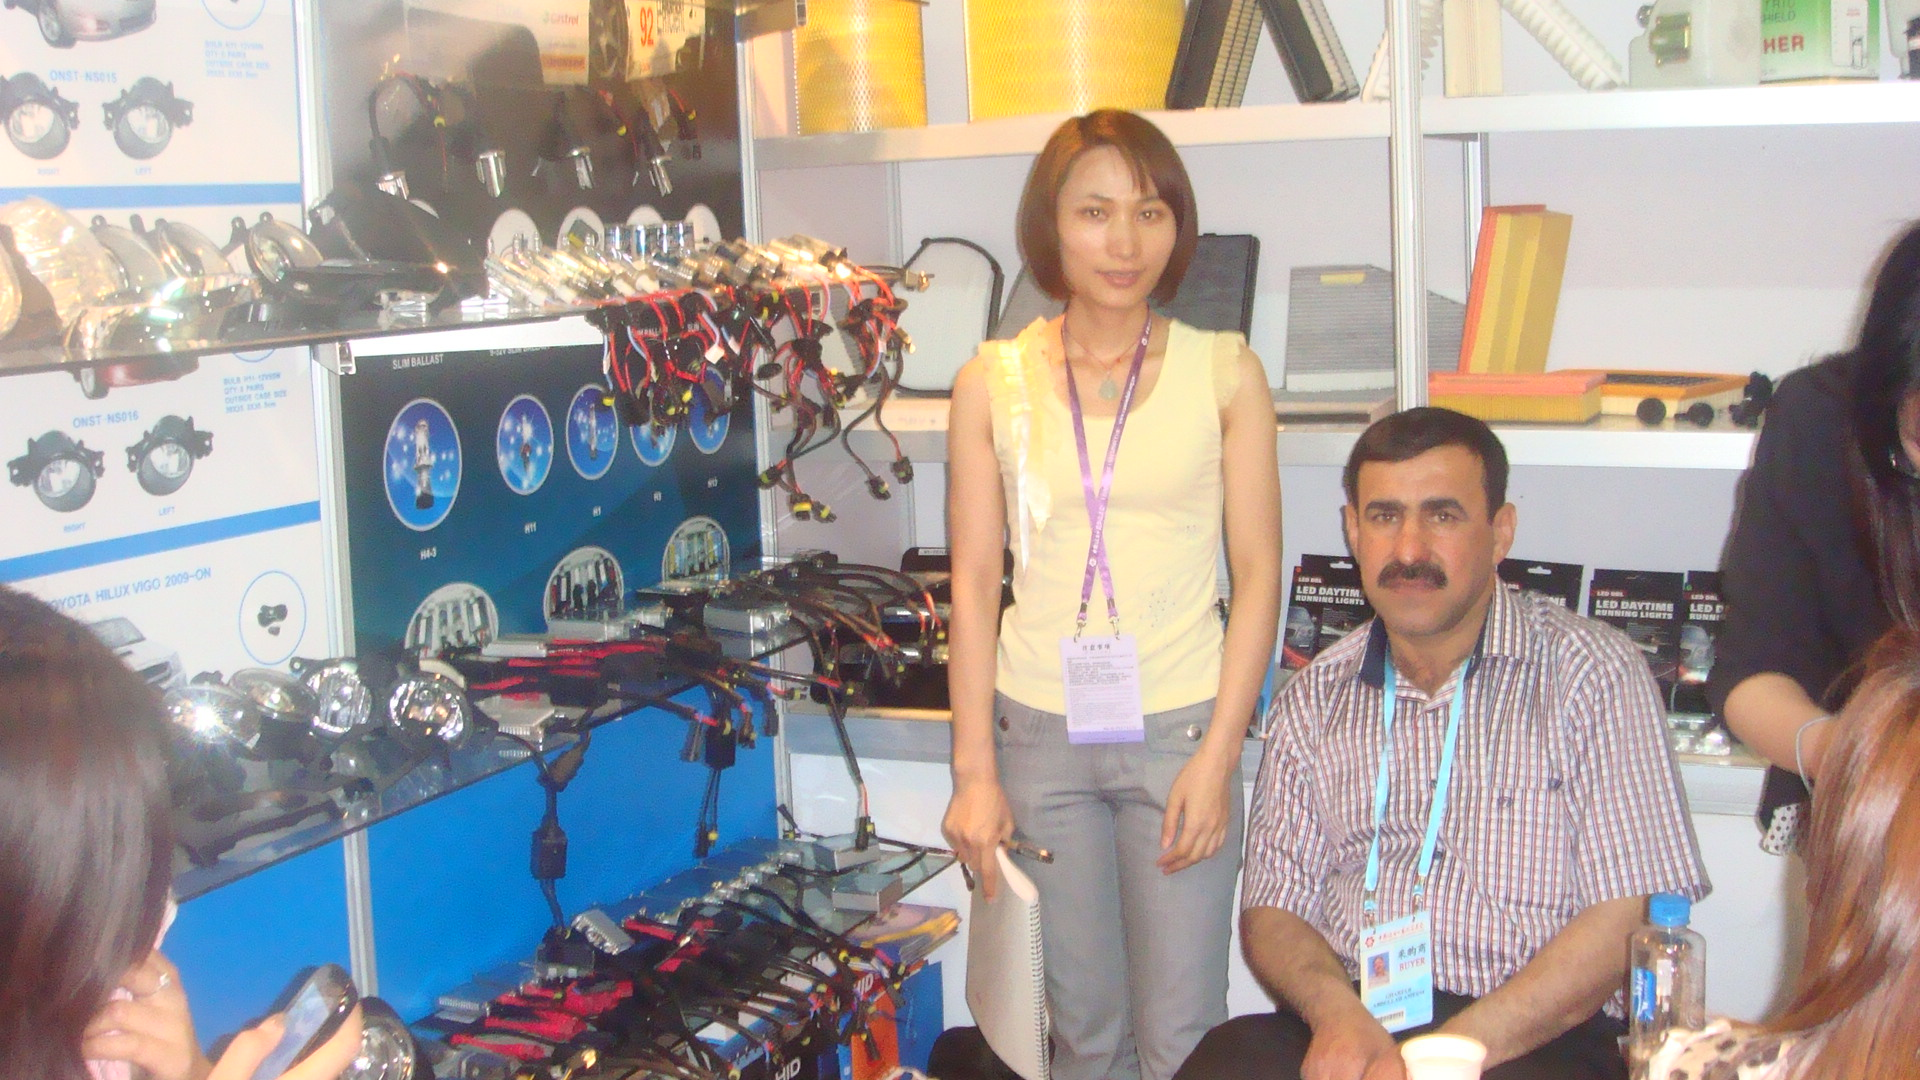 We attended 109th spring canton fair at 2011